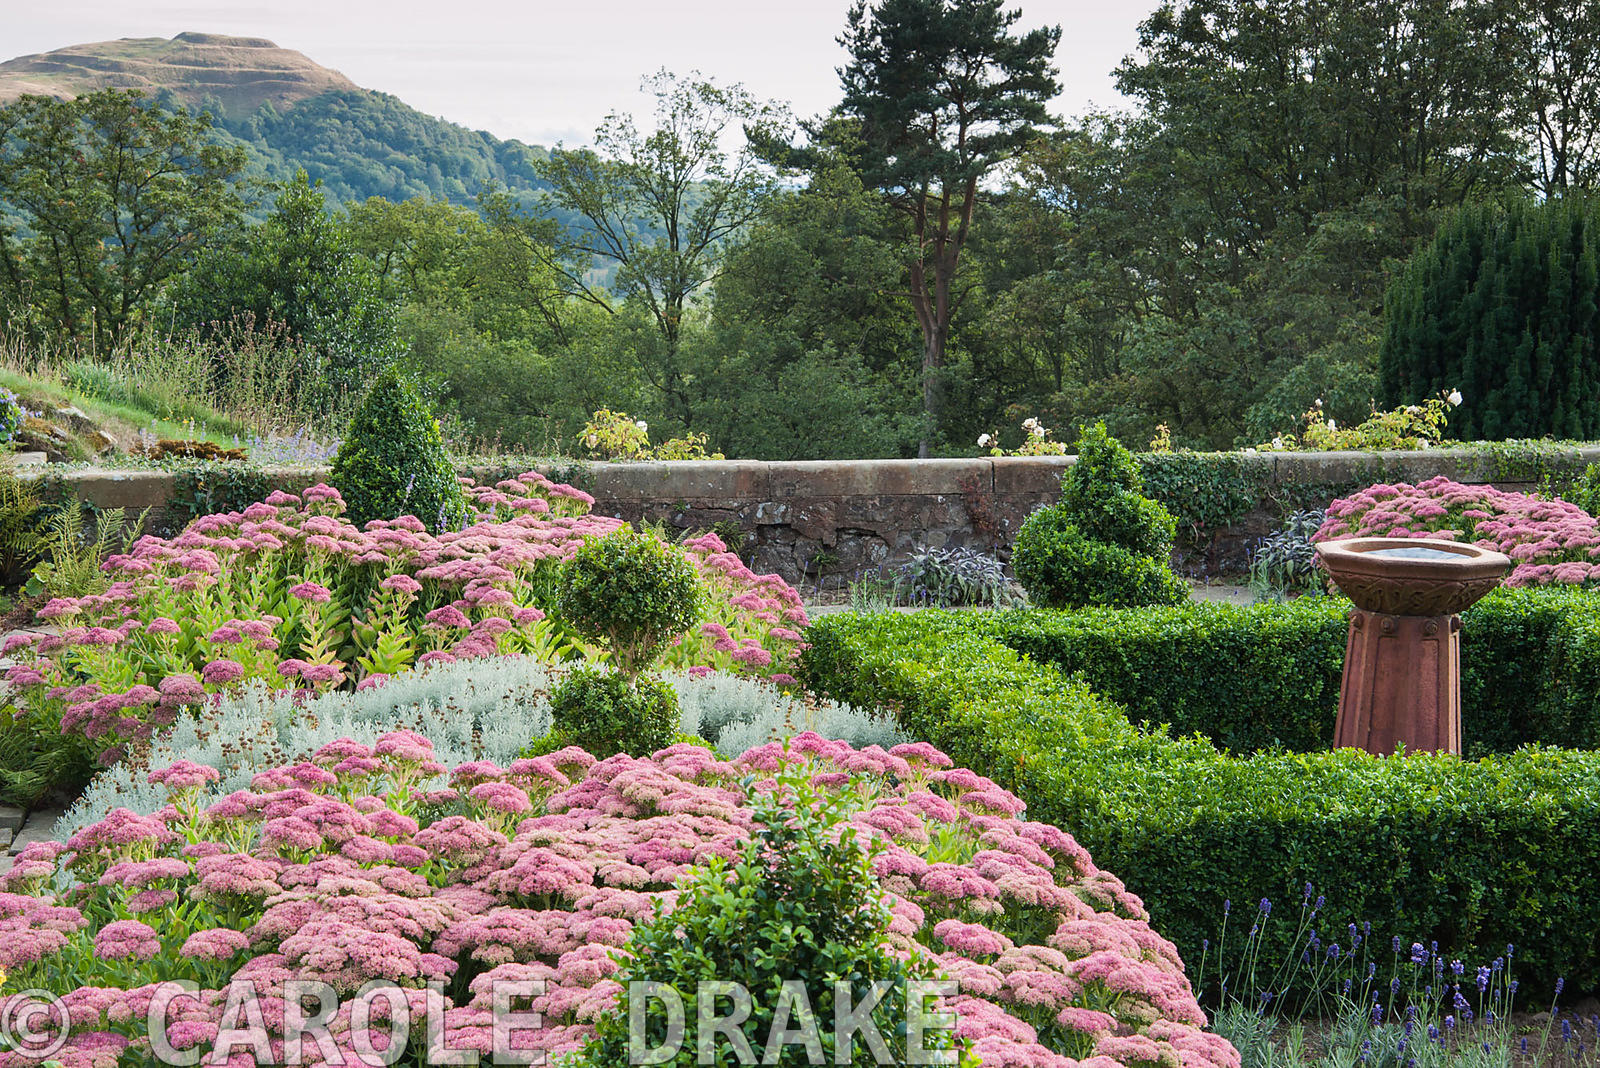 Terrace planted with box, Sedum 'Herbstfreude', santolina and Lavandula angustifolia 'Hidcote', with the British Camp or Herefordshire Beacon seen beyond. Perrycroft, Upper Colwall, Herefordshire, UK